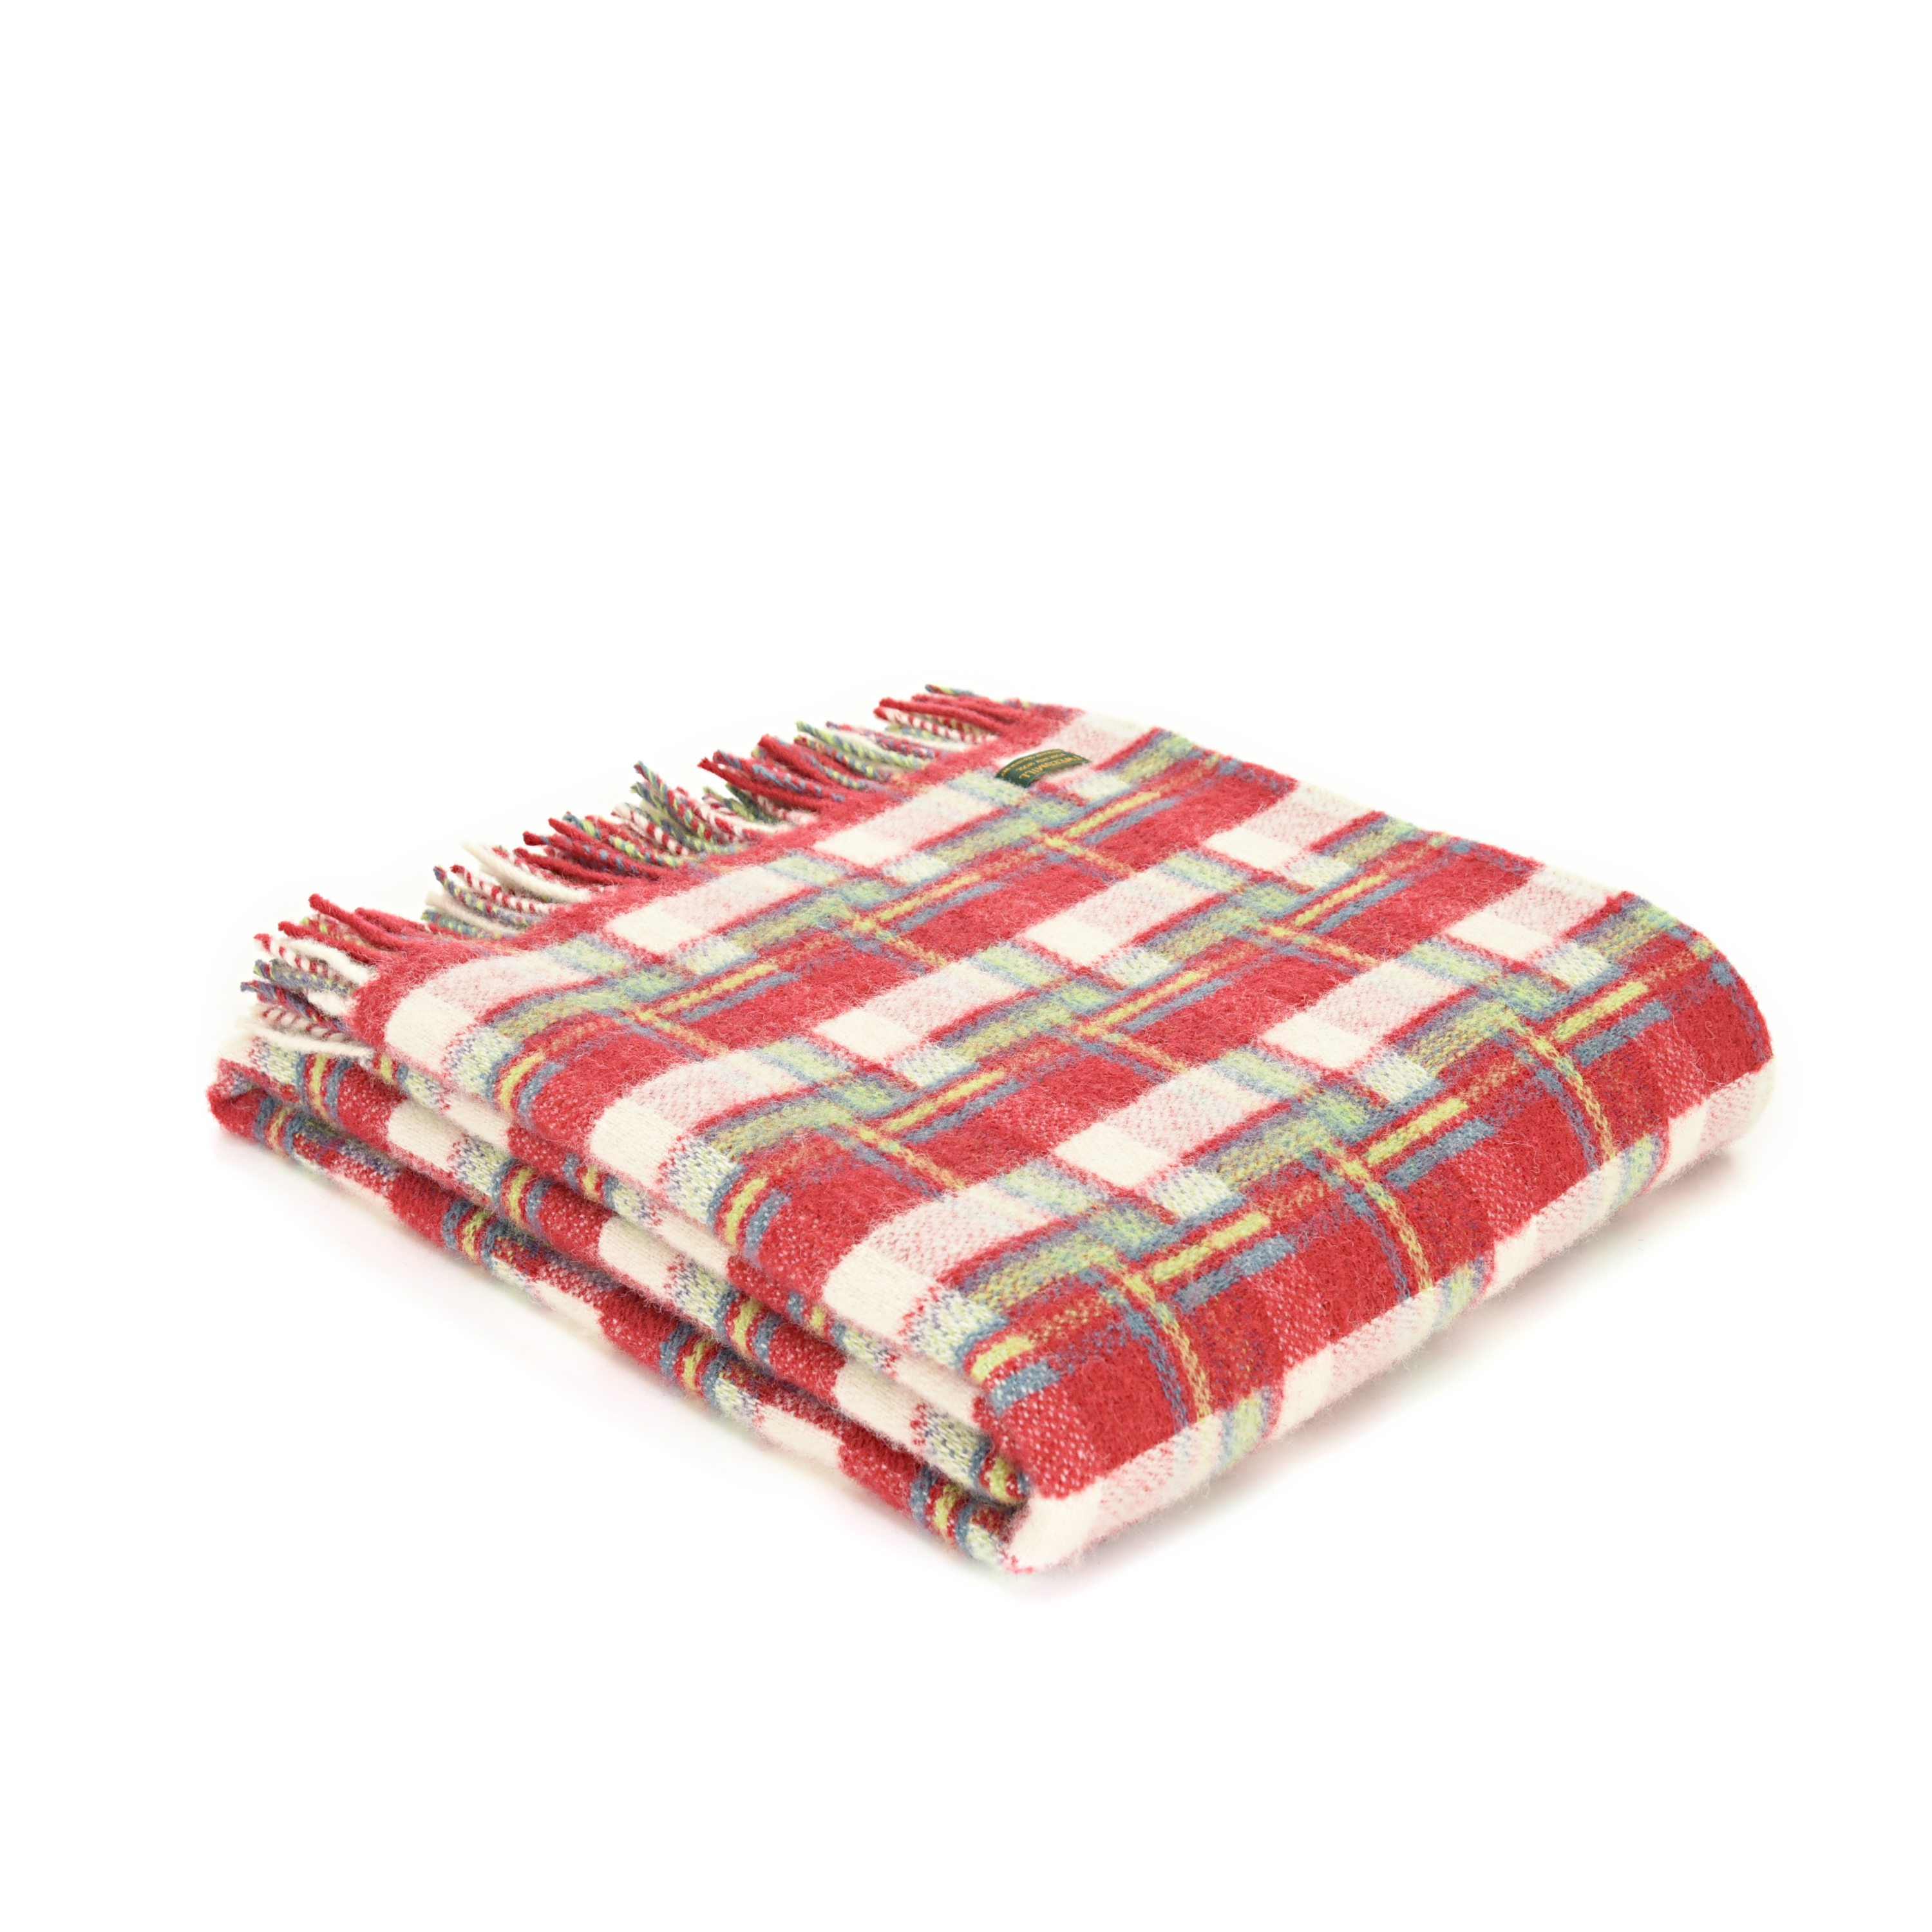 Red Check Welsh Blanket